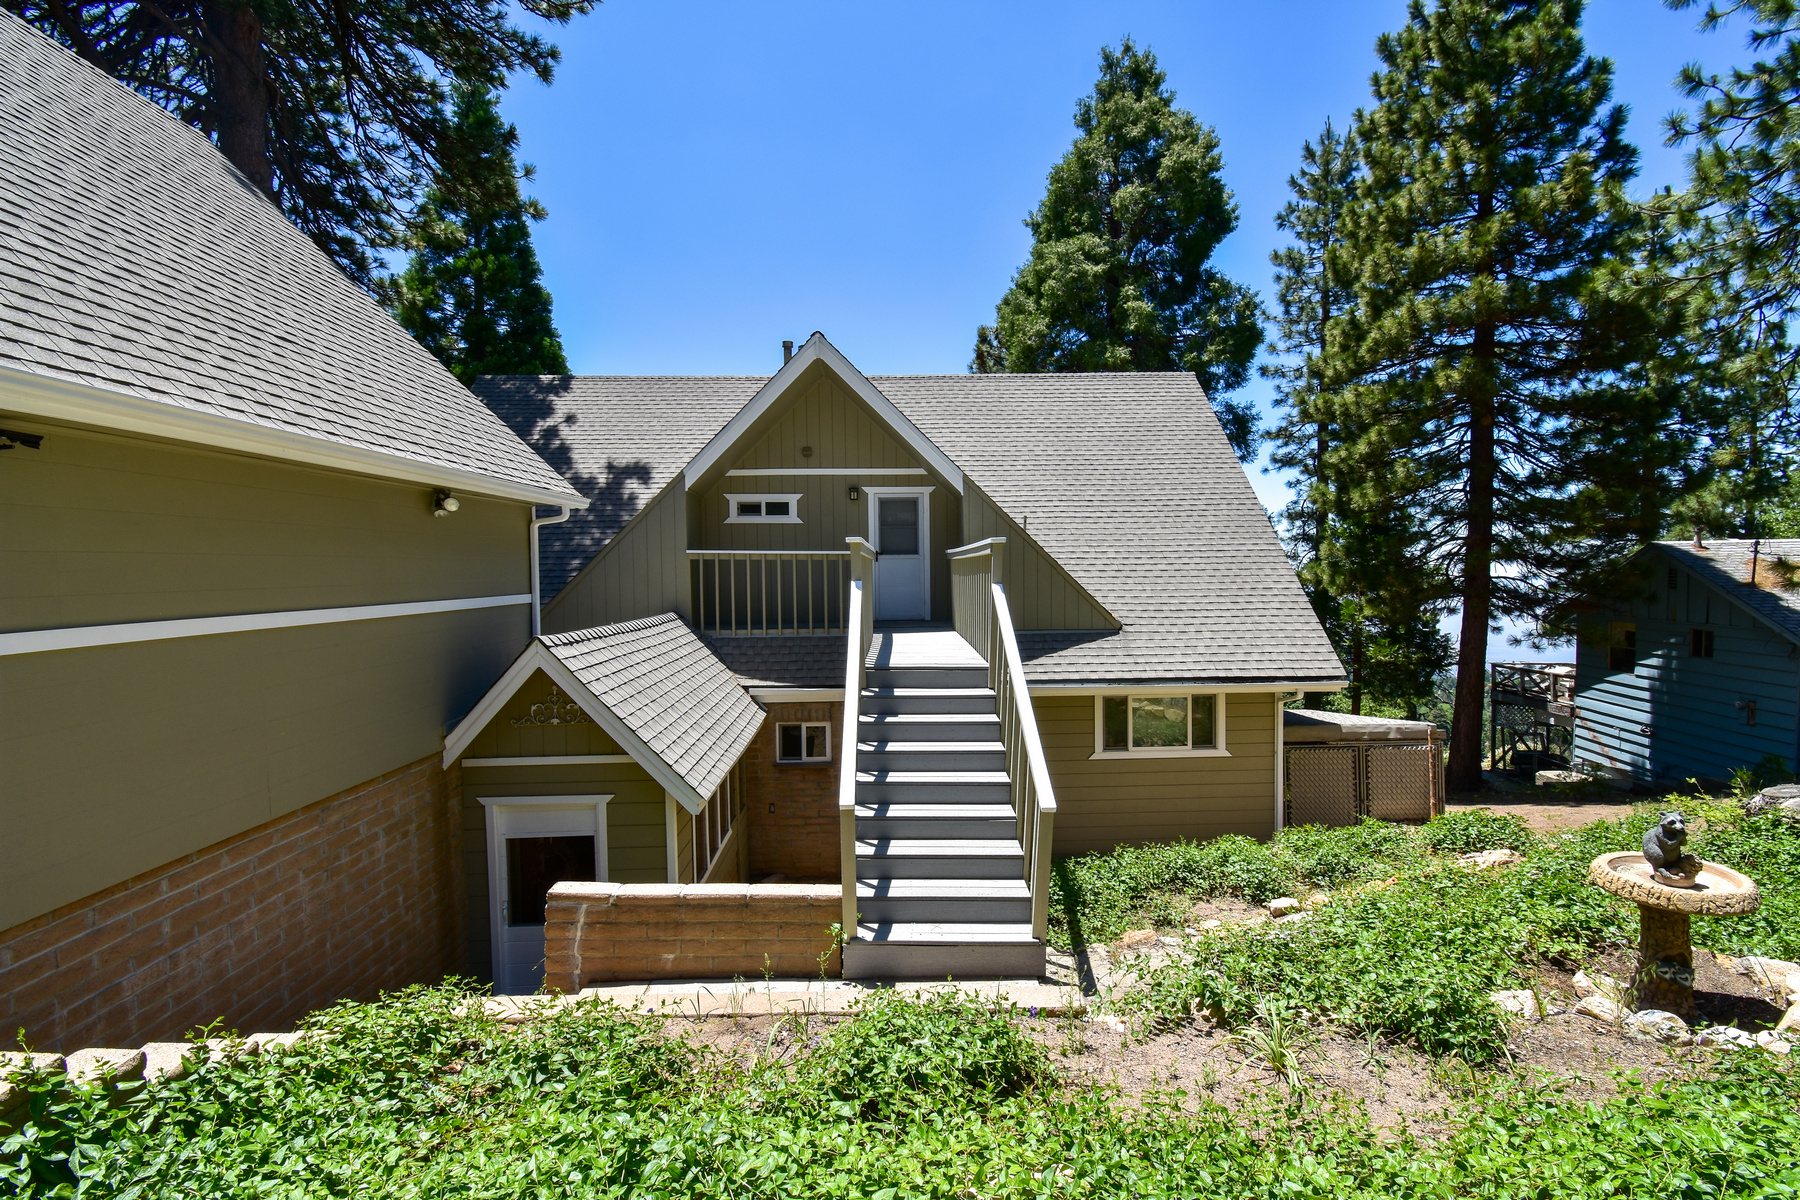 Single Family Homes for Sale at 2483 Spring Oak Drive, Running Springs California 2483 Spring Oak Drive Running Springs, California 92382 United States